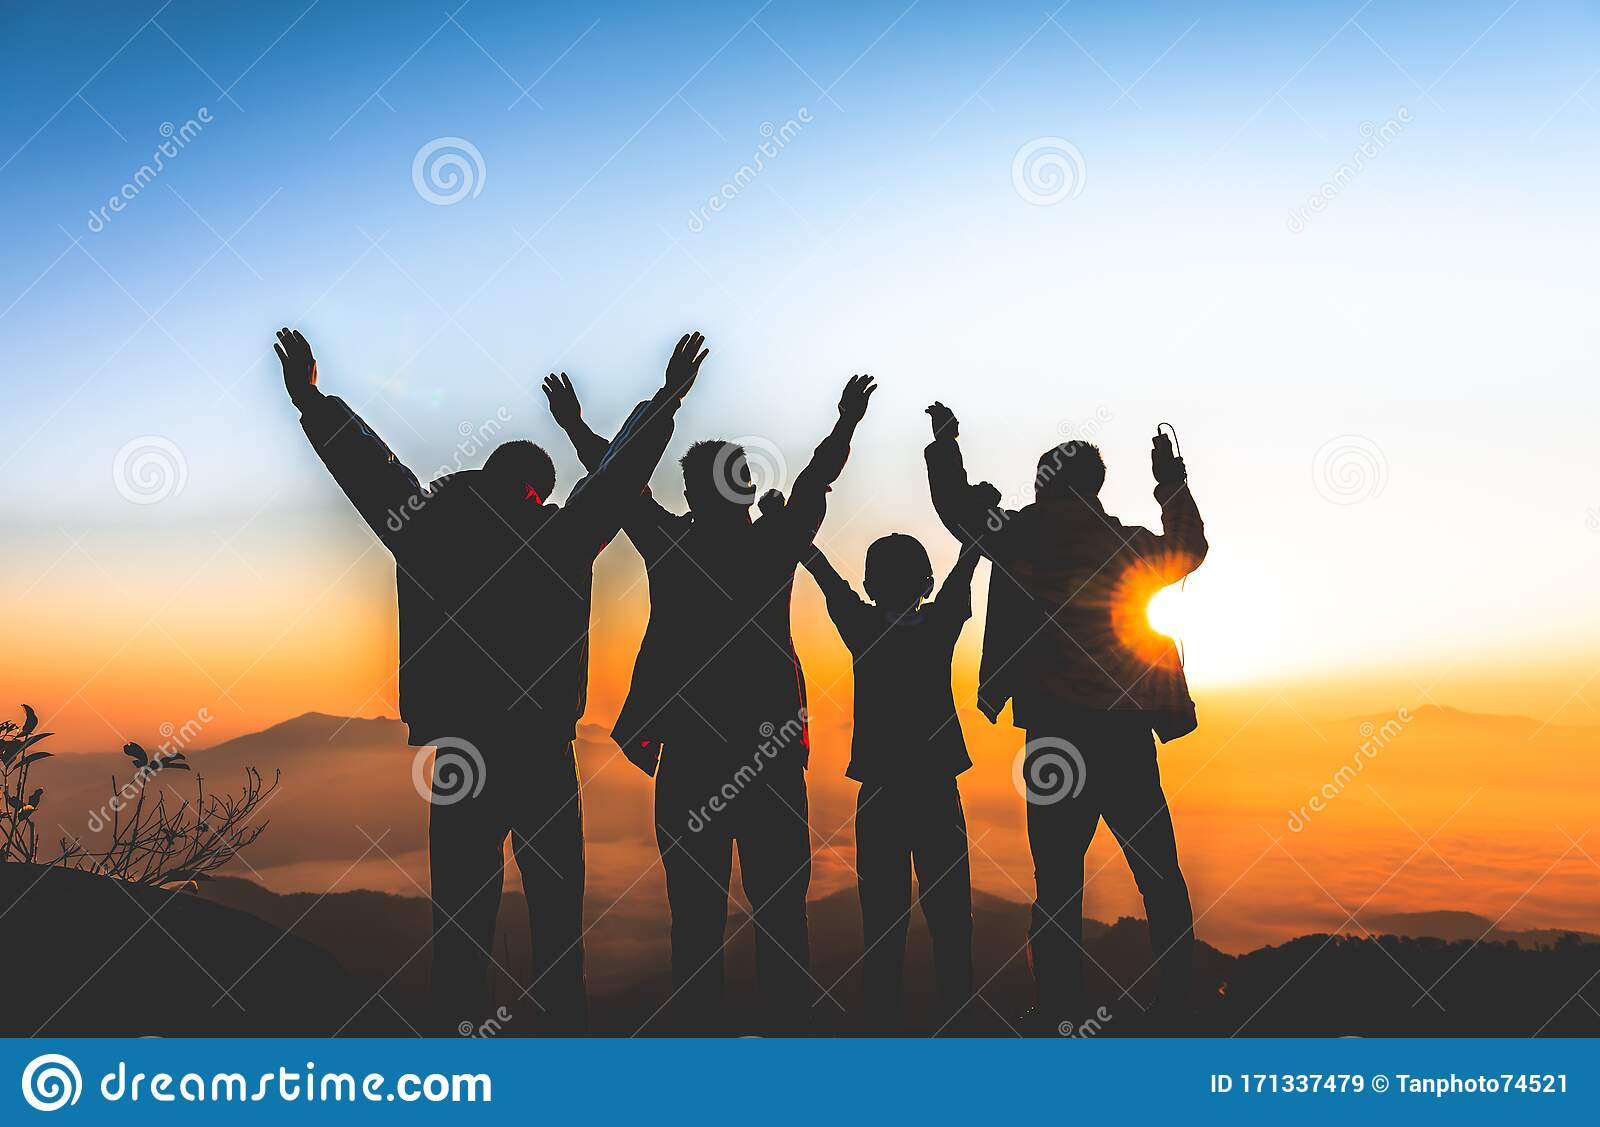 The Back Of 4 Boys Who Are Friends Editorial Stock Image Image Of Family Activity 171337479